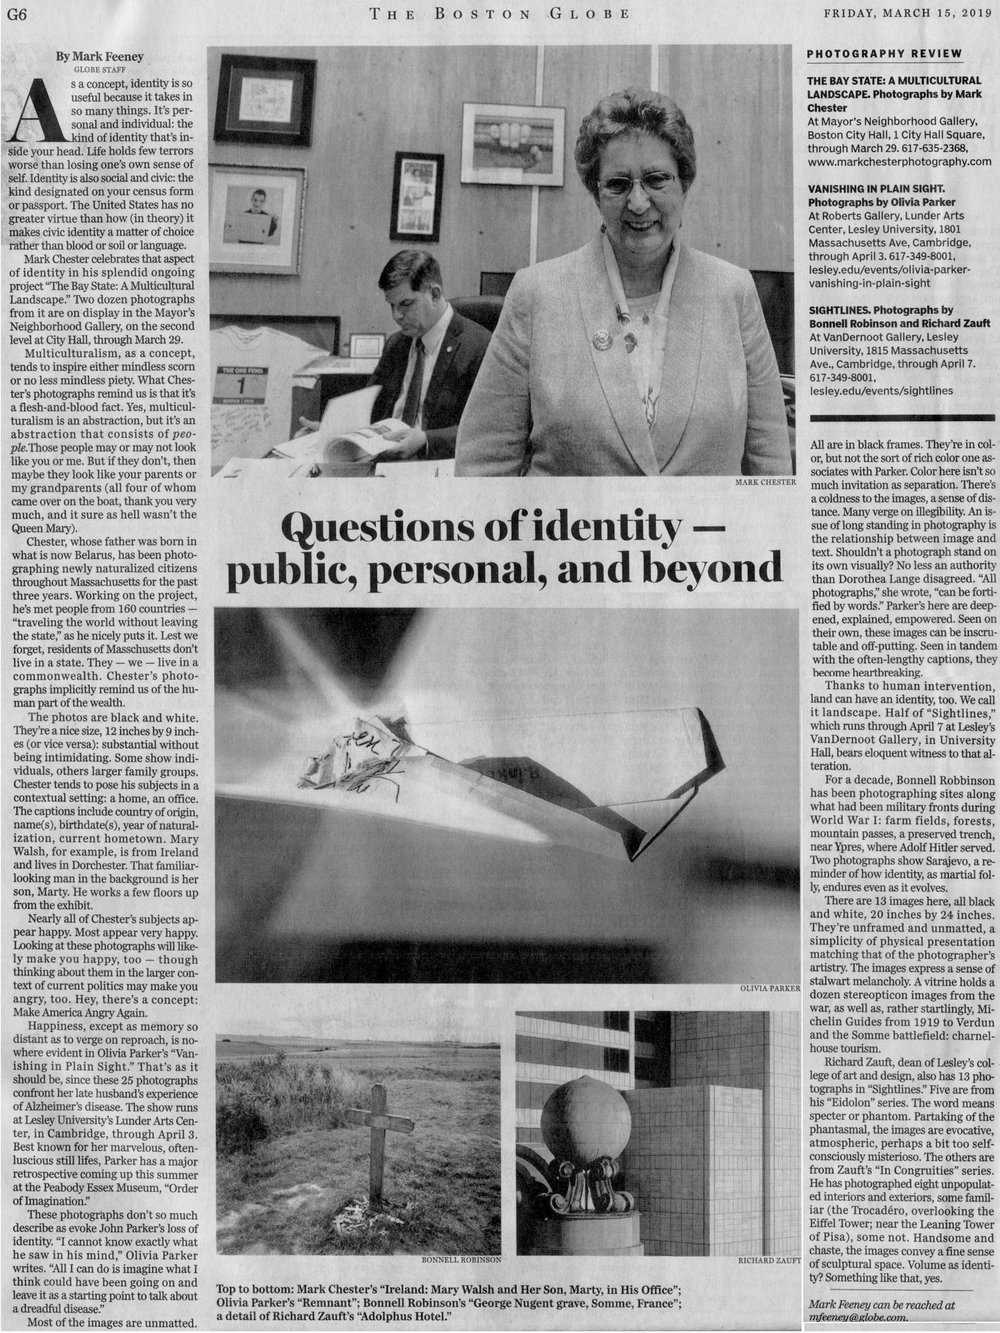 """Boston Globe  Art: PHOTOGRAPHY REVIEW  Questions of identity — public, personal, and beyond By   Mark Feeney    GLOBE STAFFMARCH 14, 2019. Photograph:  Mark Chester's """"Ireland: Mary Walsh and Her Son, Marty, in His Office"""""""